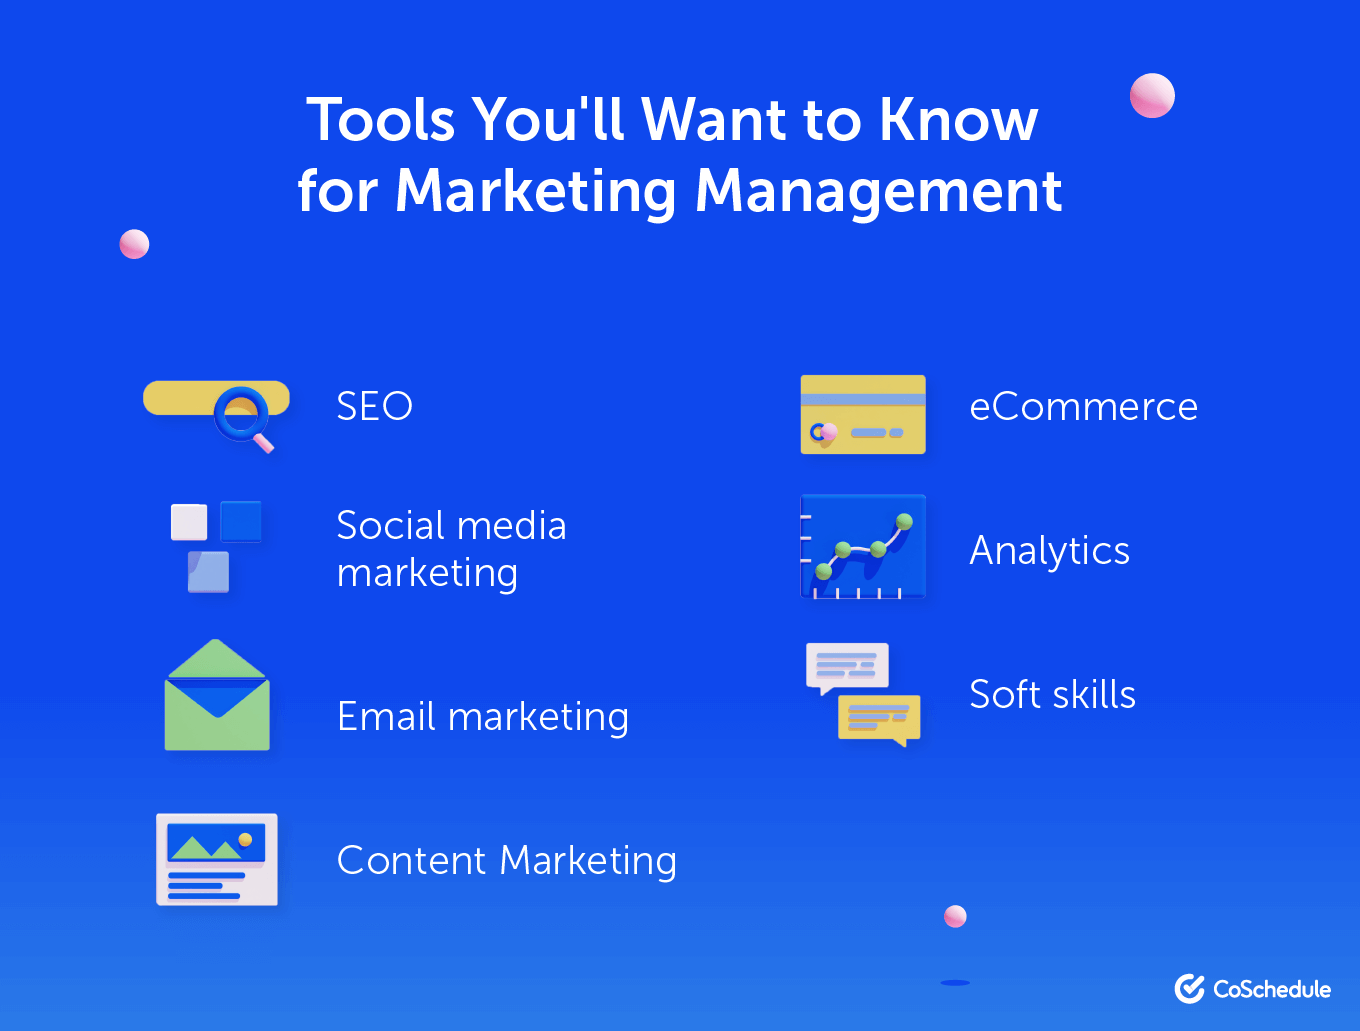 Tools for marketing management